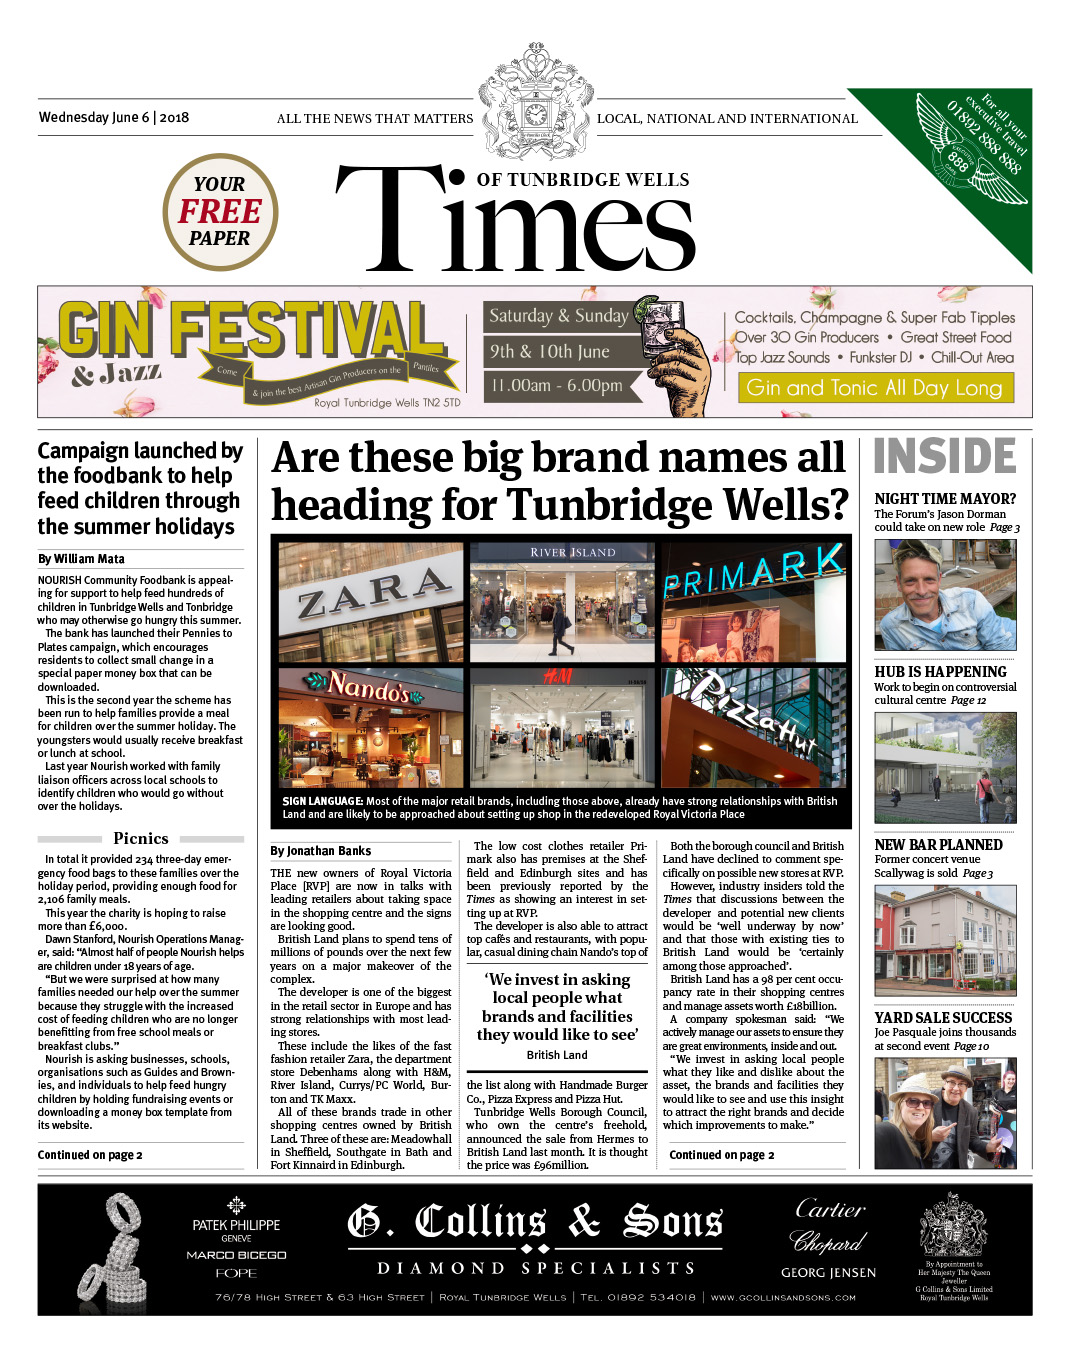 Read the Times of Tunbridge Wells 6th June 2018